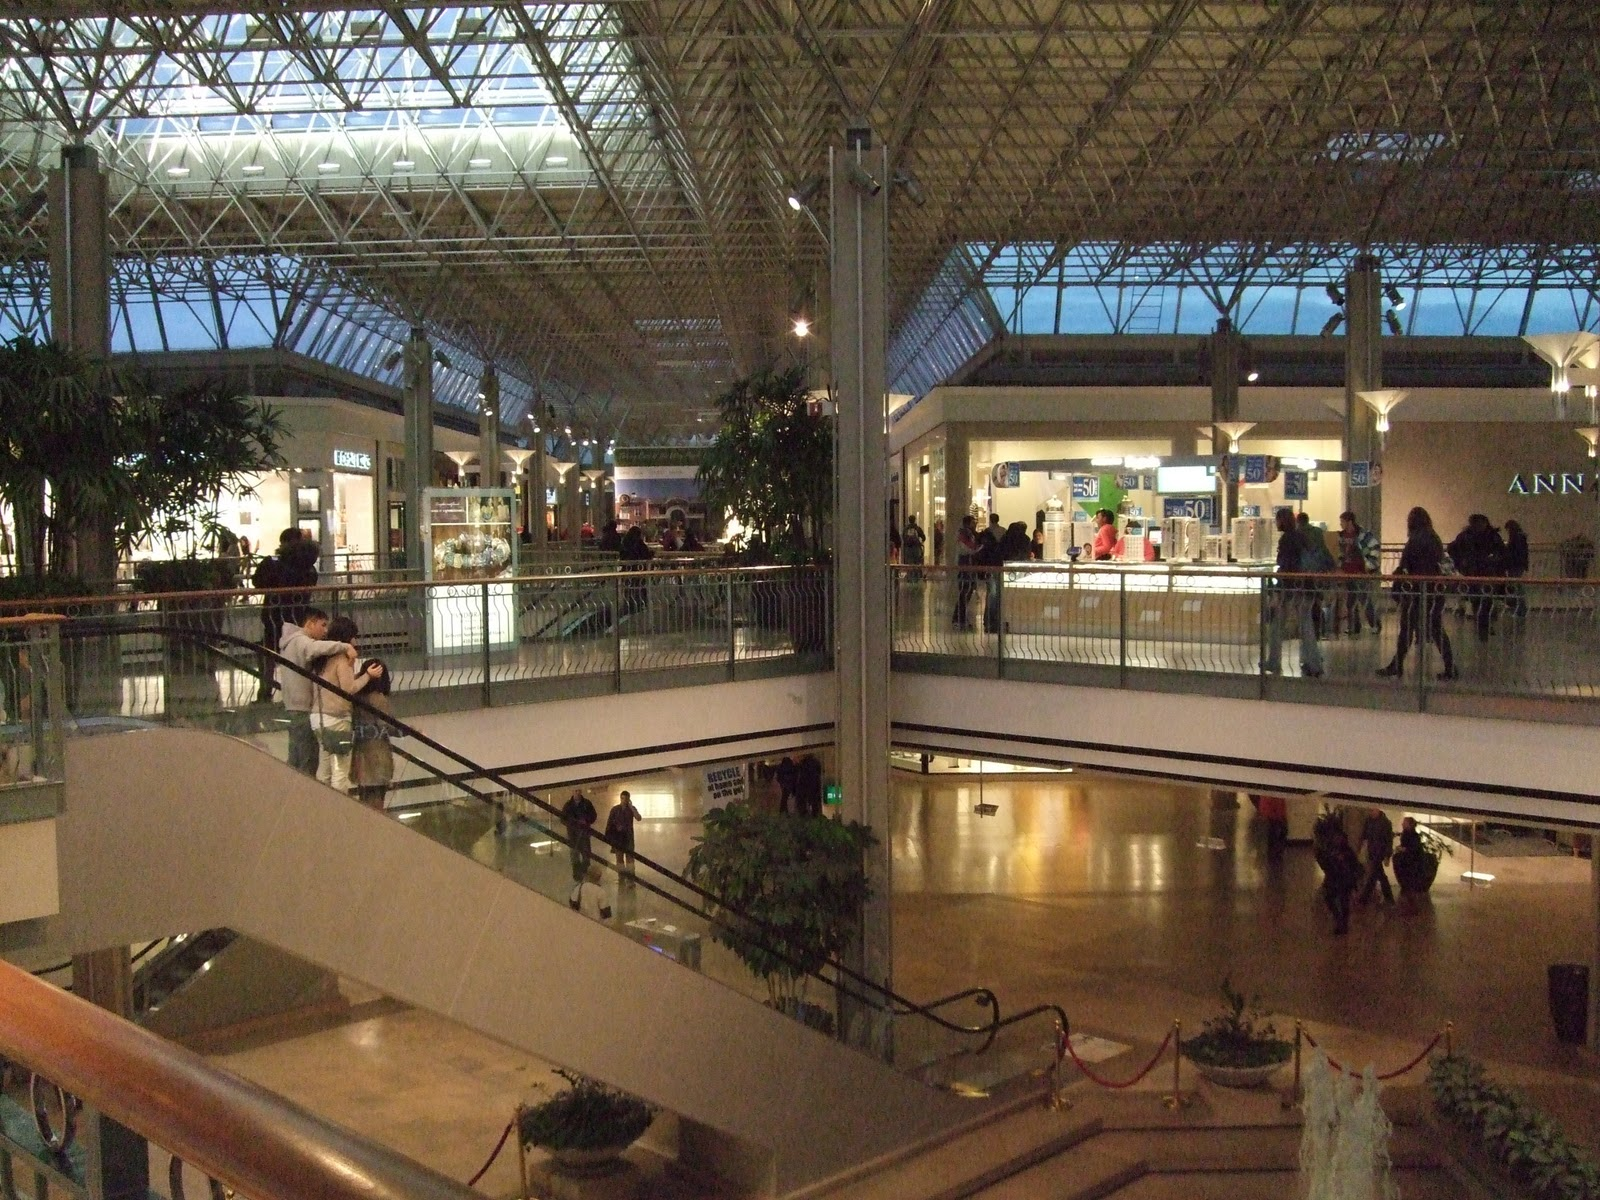 Welcome to Columbia Mall Mall Hours: Monday - Saturday am - pm, Sunday pm - pm Mall Walker Hours: Monday - Saturday am - am, Sunday am - 12 noon. HOLIDAY HOURS MAY VARY.